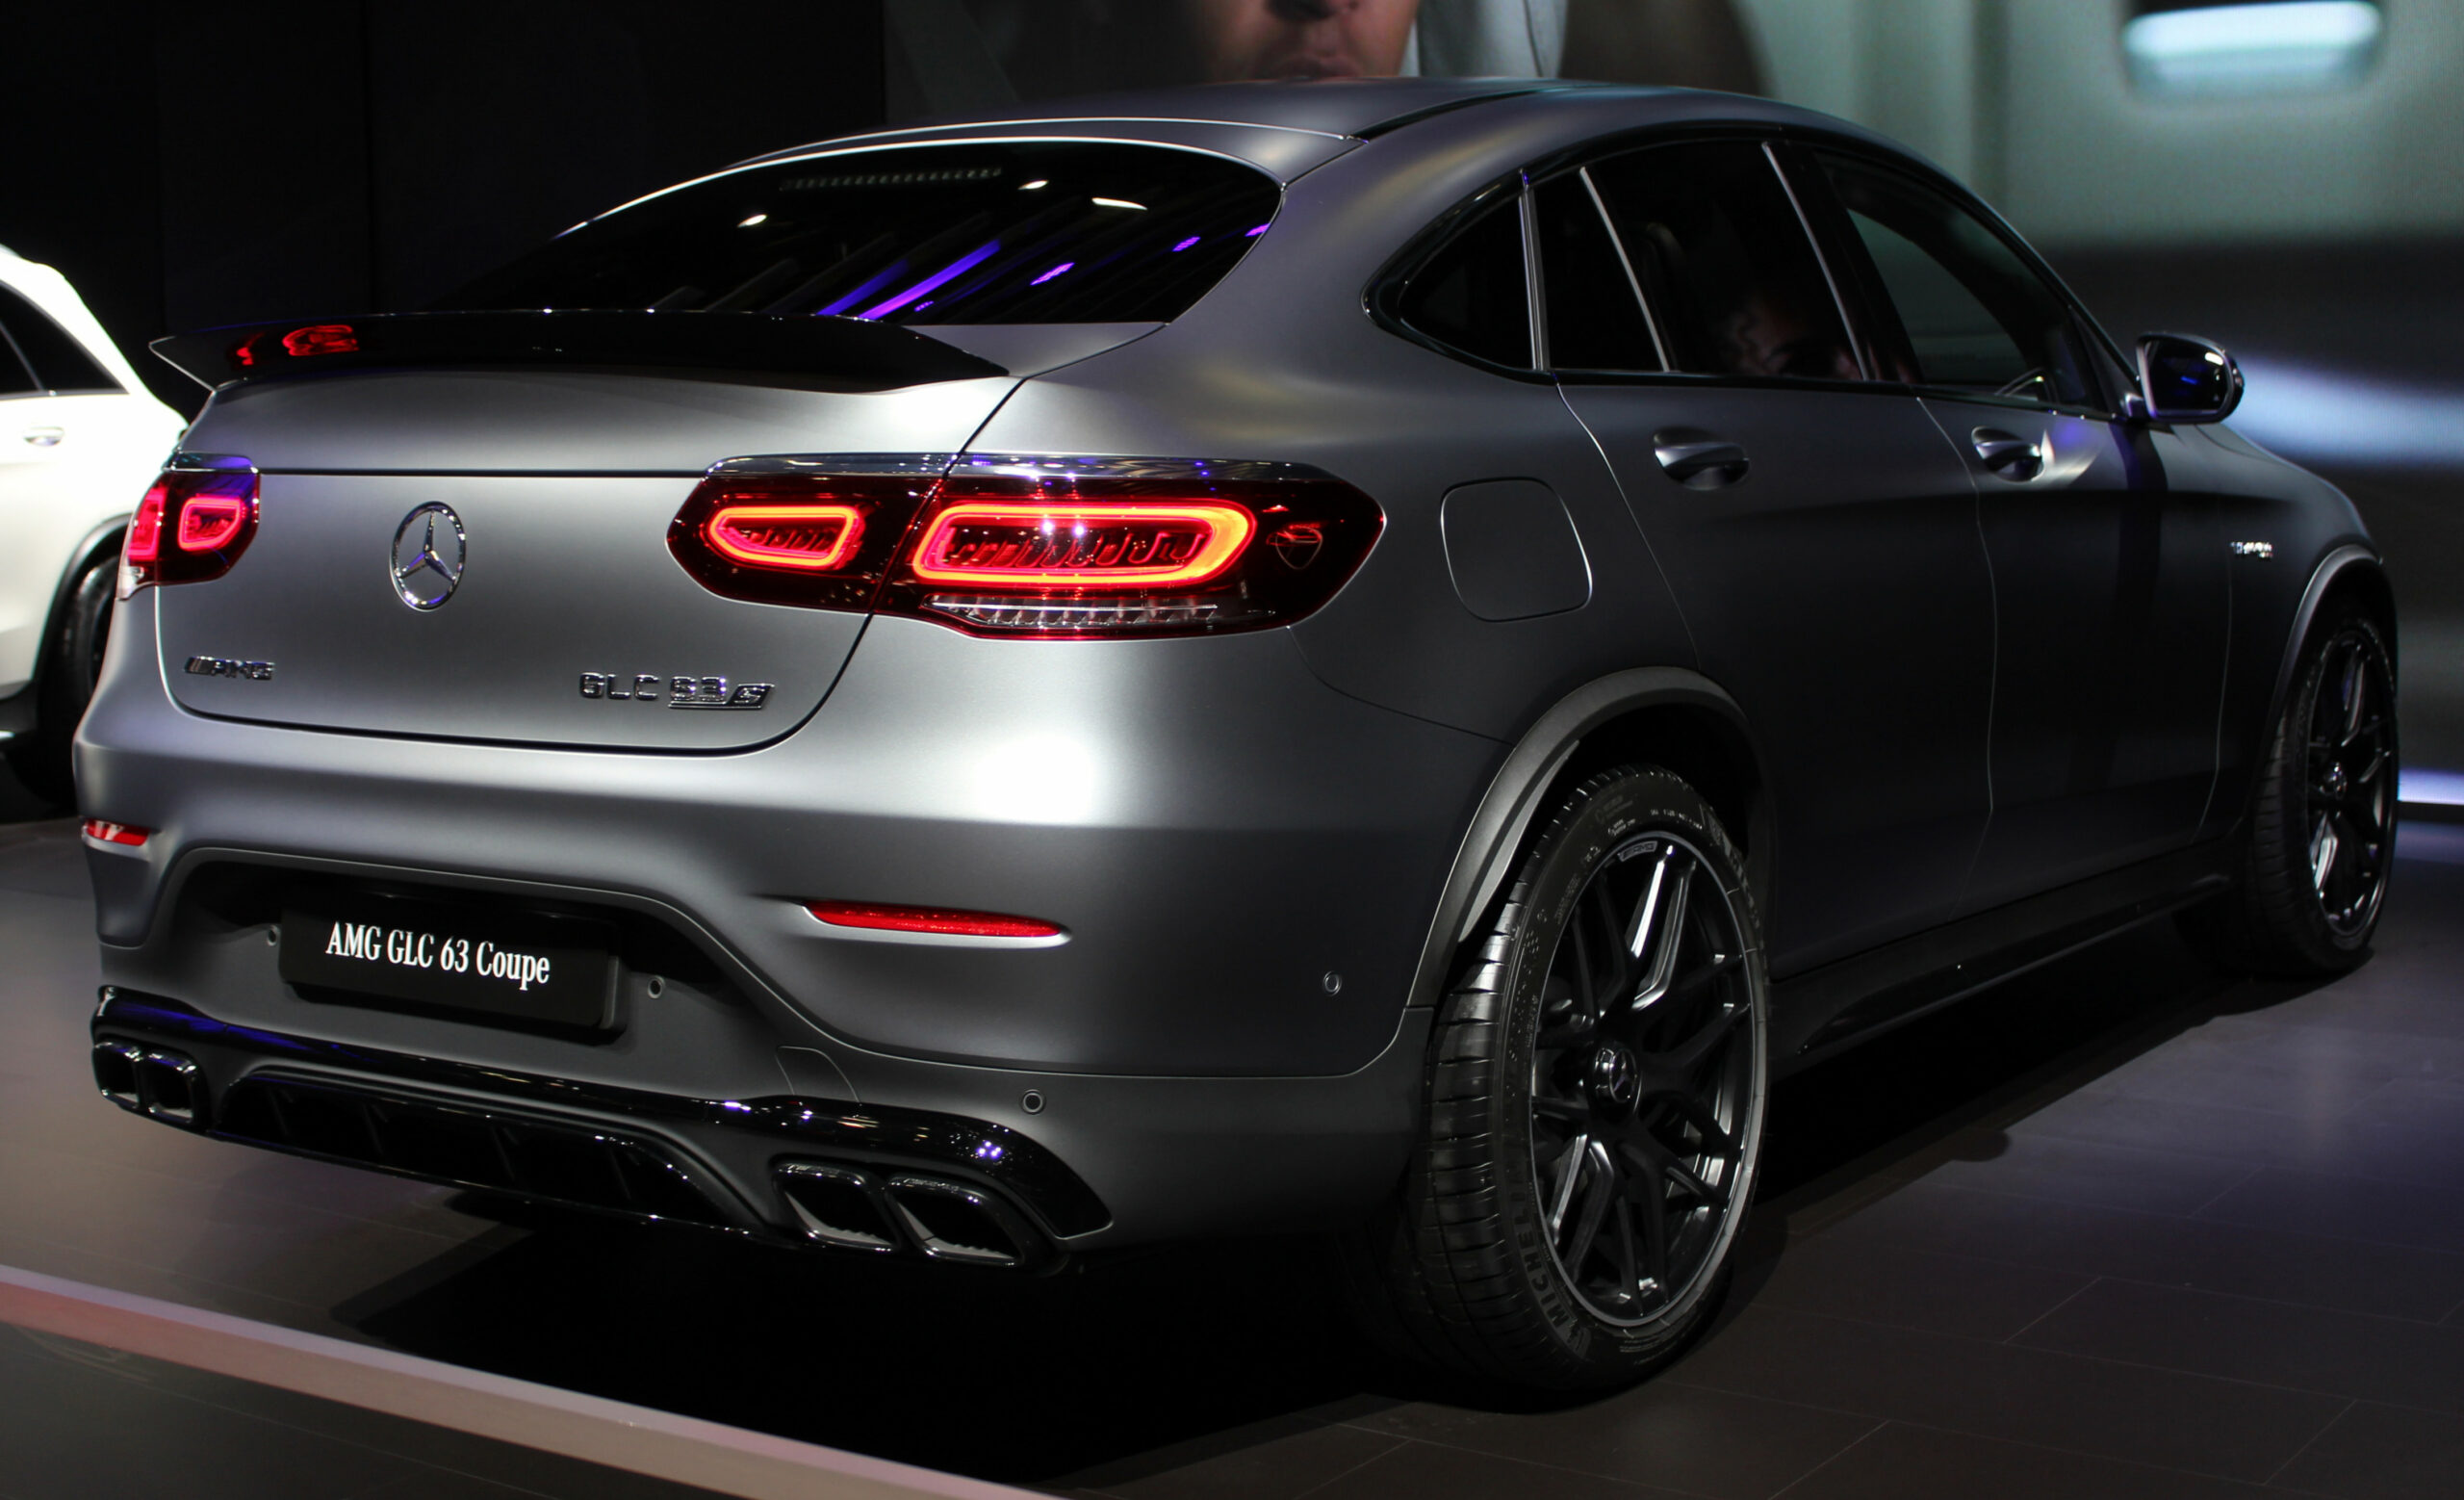 Datei:9 Mercedes-AMG GLC 9 S Coupe rear NYIAS 9